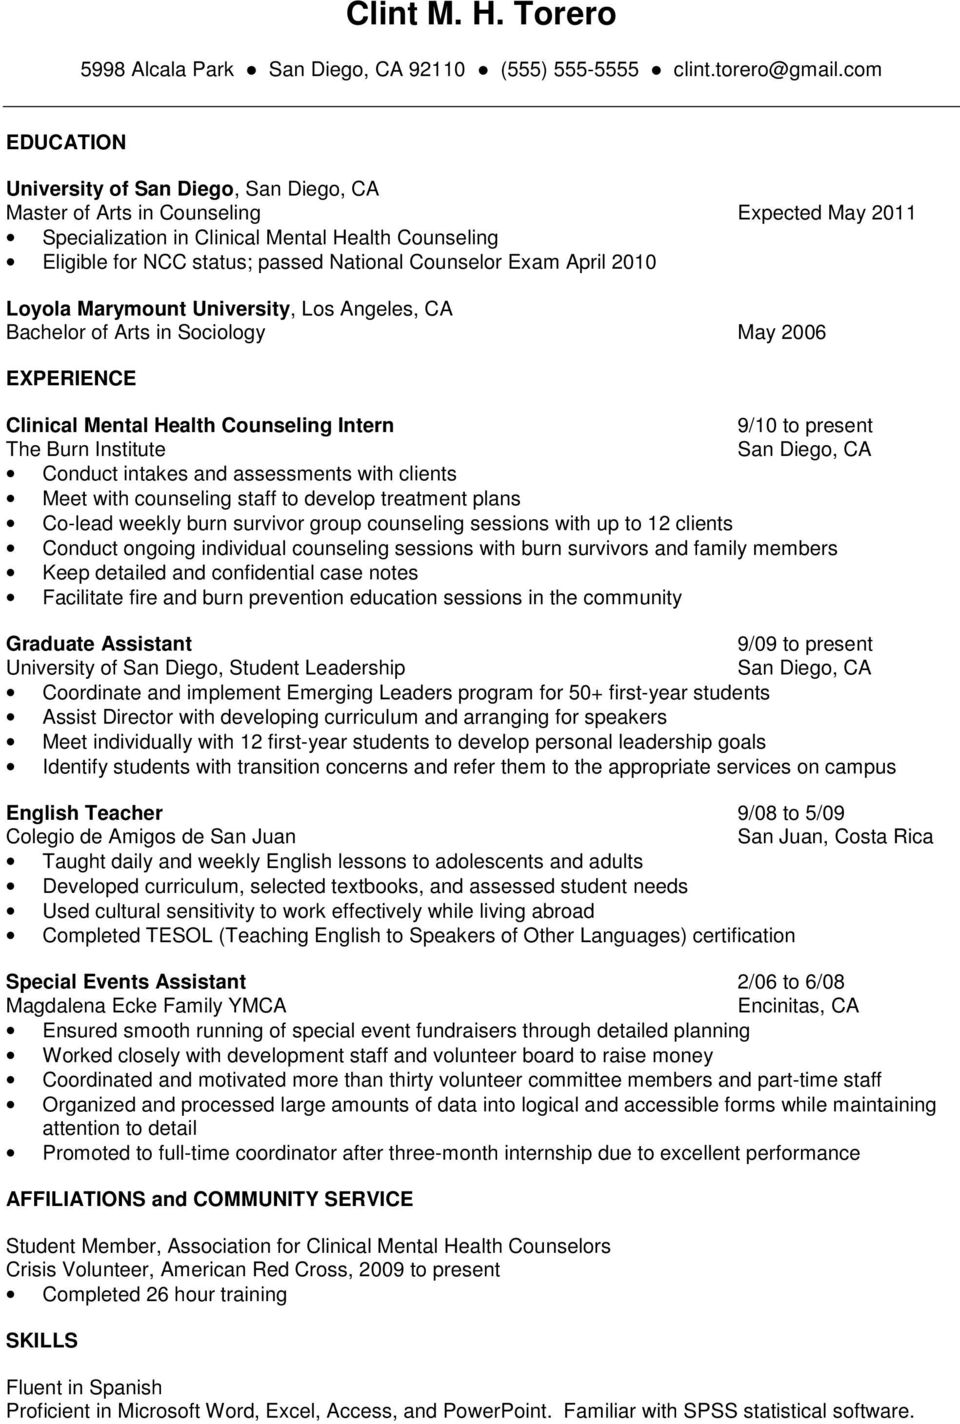 Los Angeles, CA Bachelor of Arts in Sociology May 2006 Clinical Mental Health Counseling Intern 9/10 to present The Burn Institute Conduct intakes and assessments with clients Meet with counseling